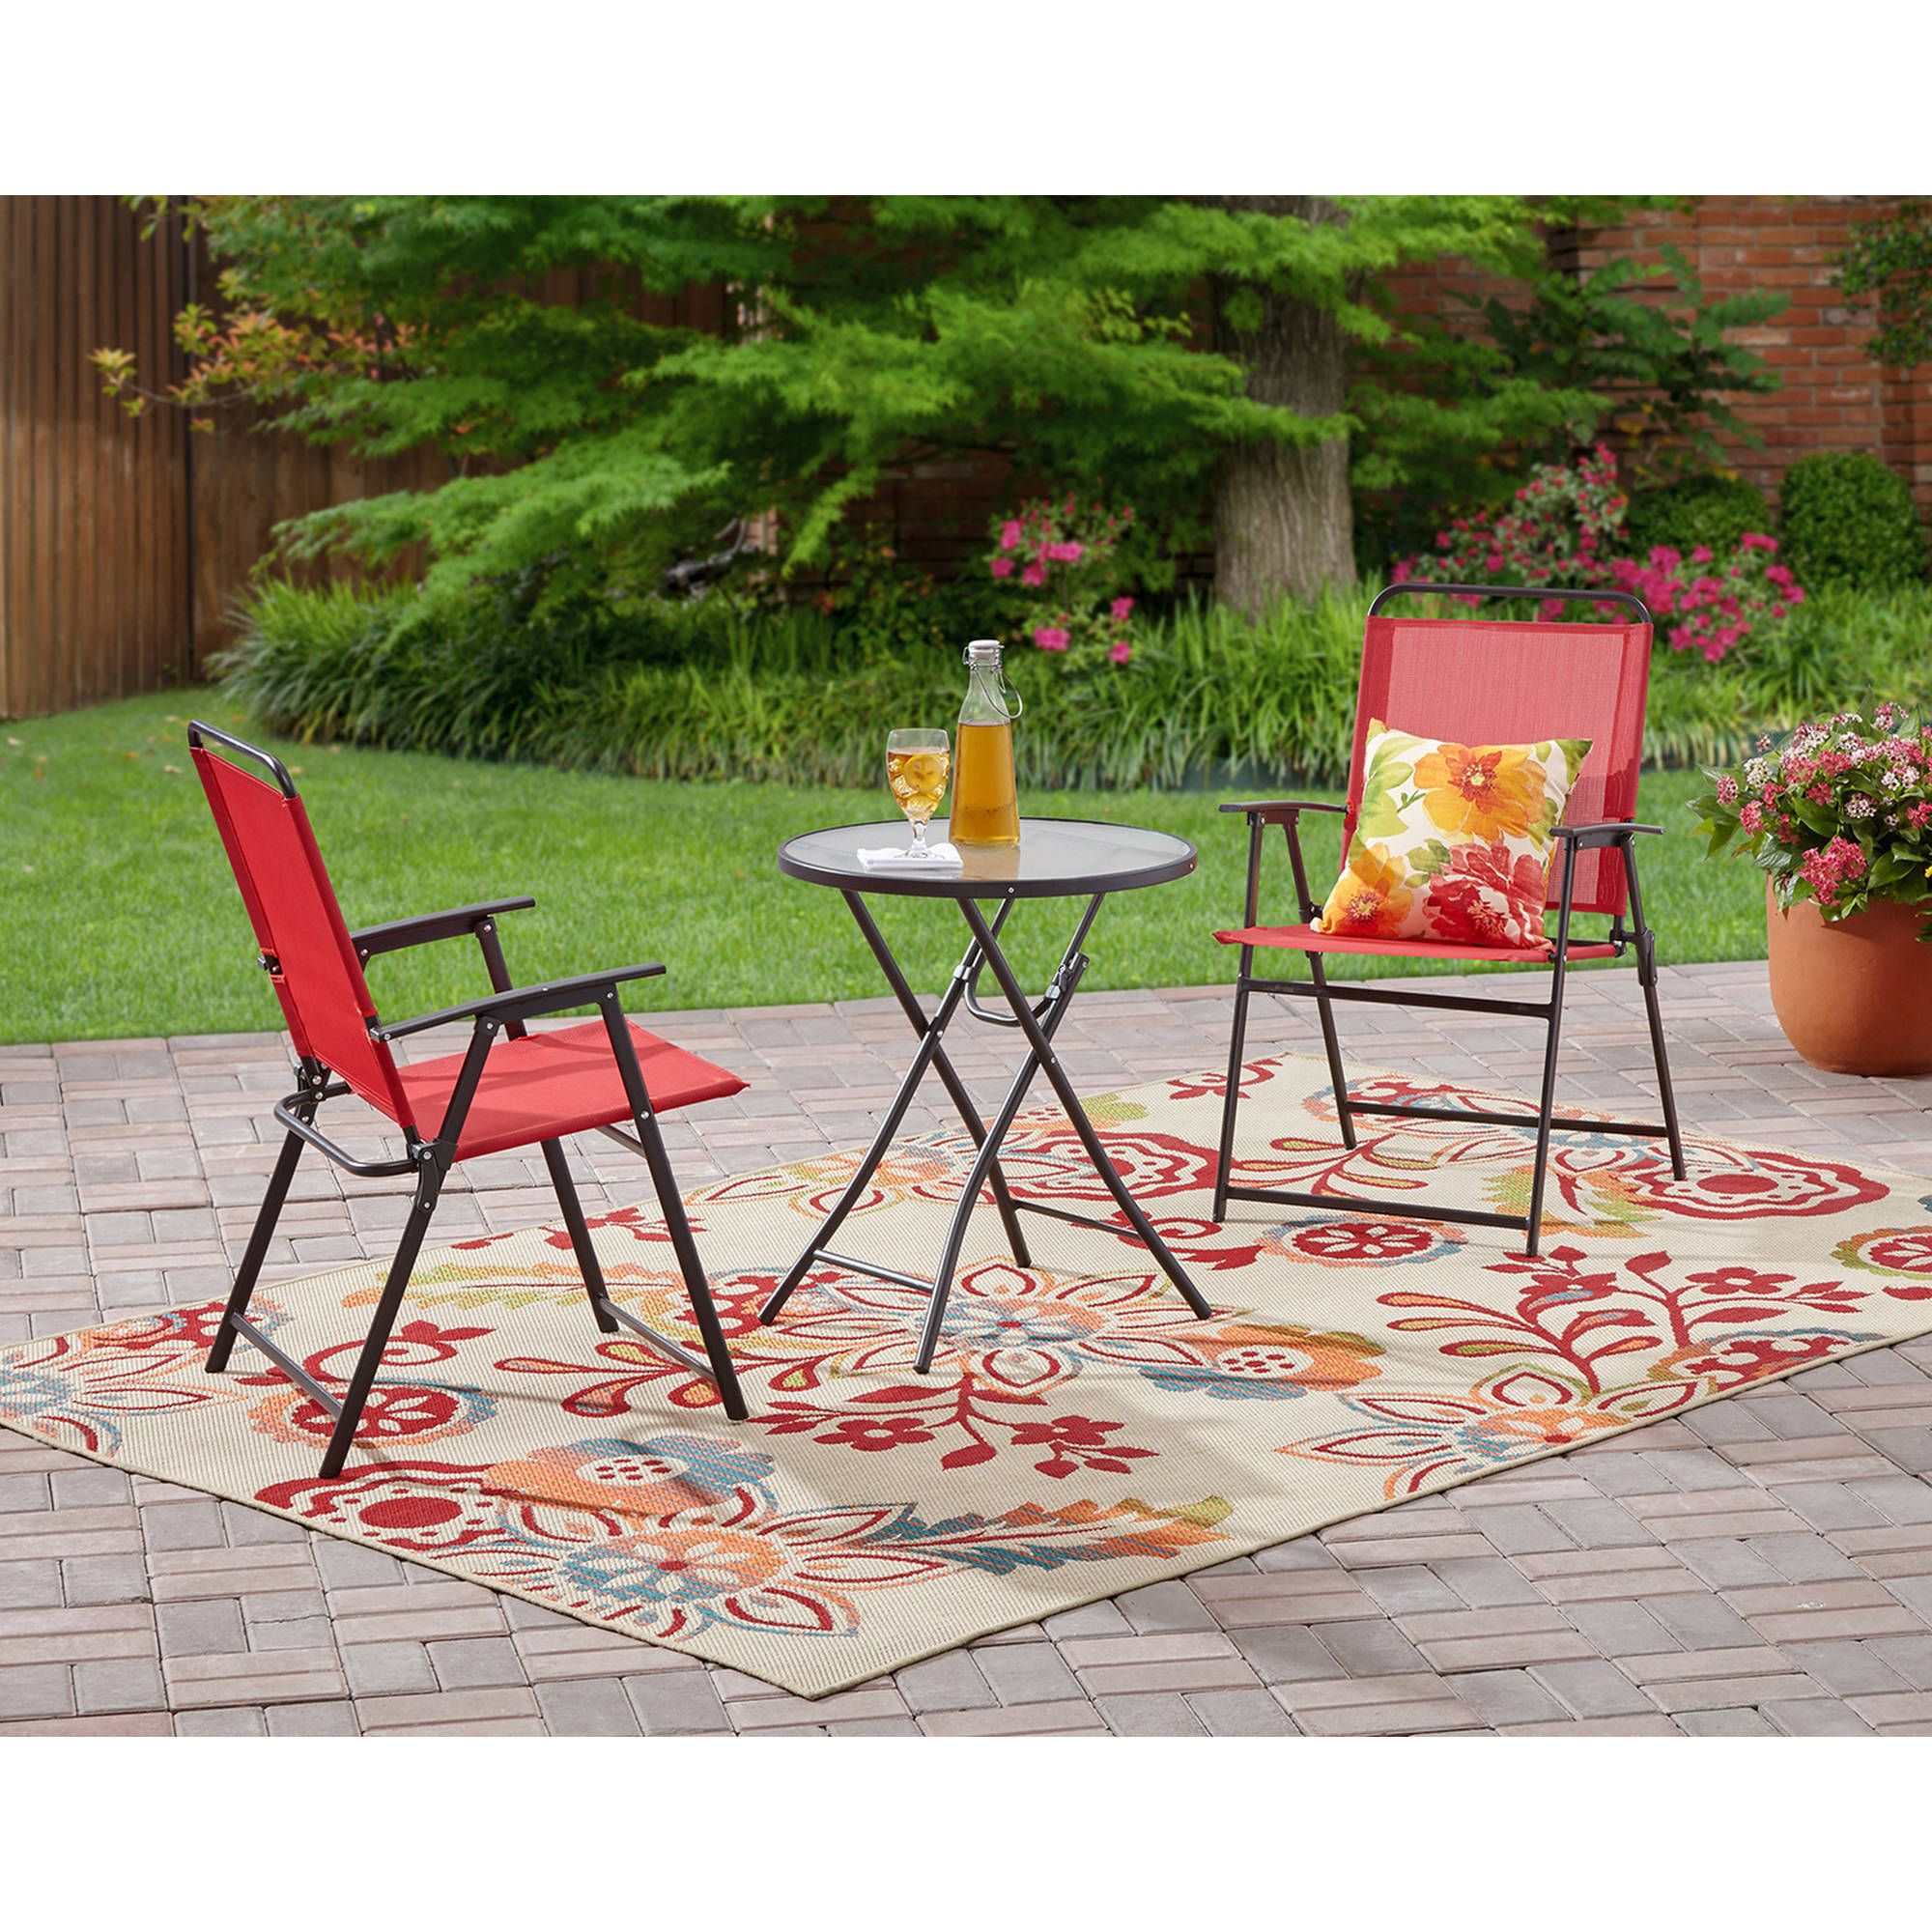 Sensational Mainstays Pleasant Grove 3 Piece Folding Bistro Set Red Walmart Com Bralicious Painted Fabric Chair Ideas Braliciousco